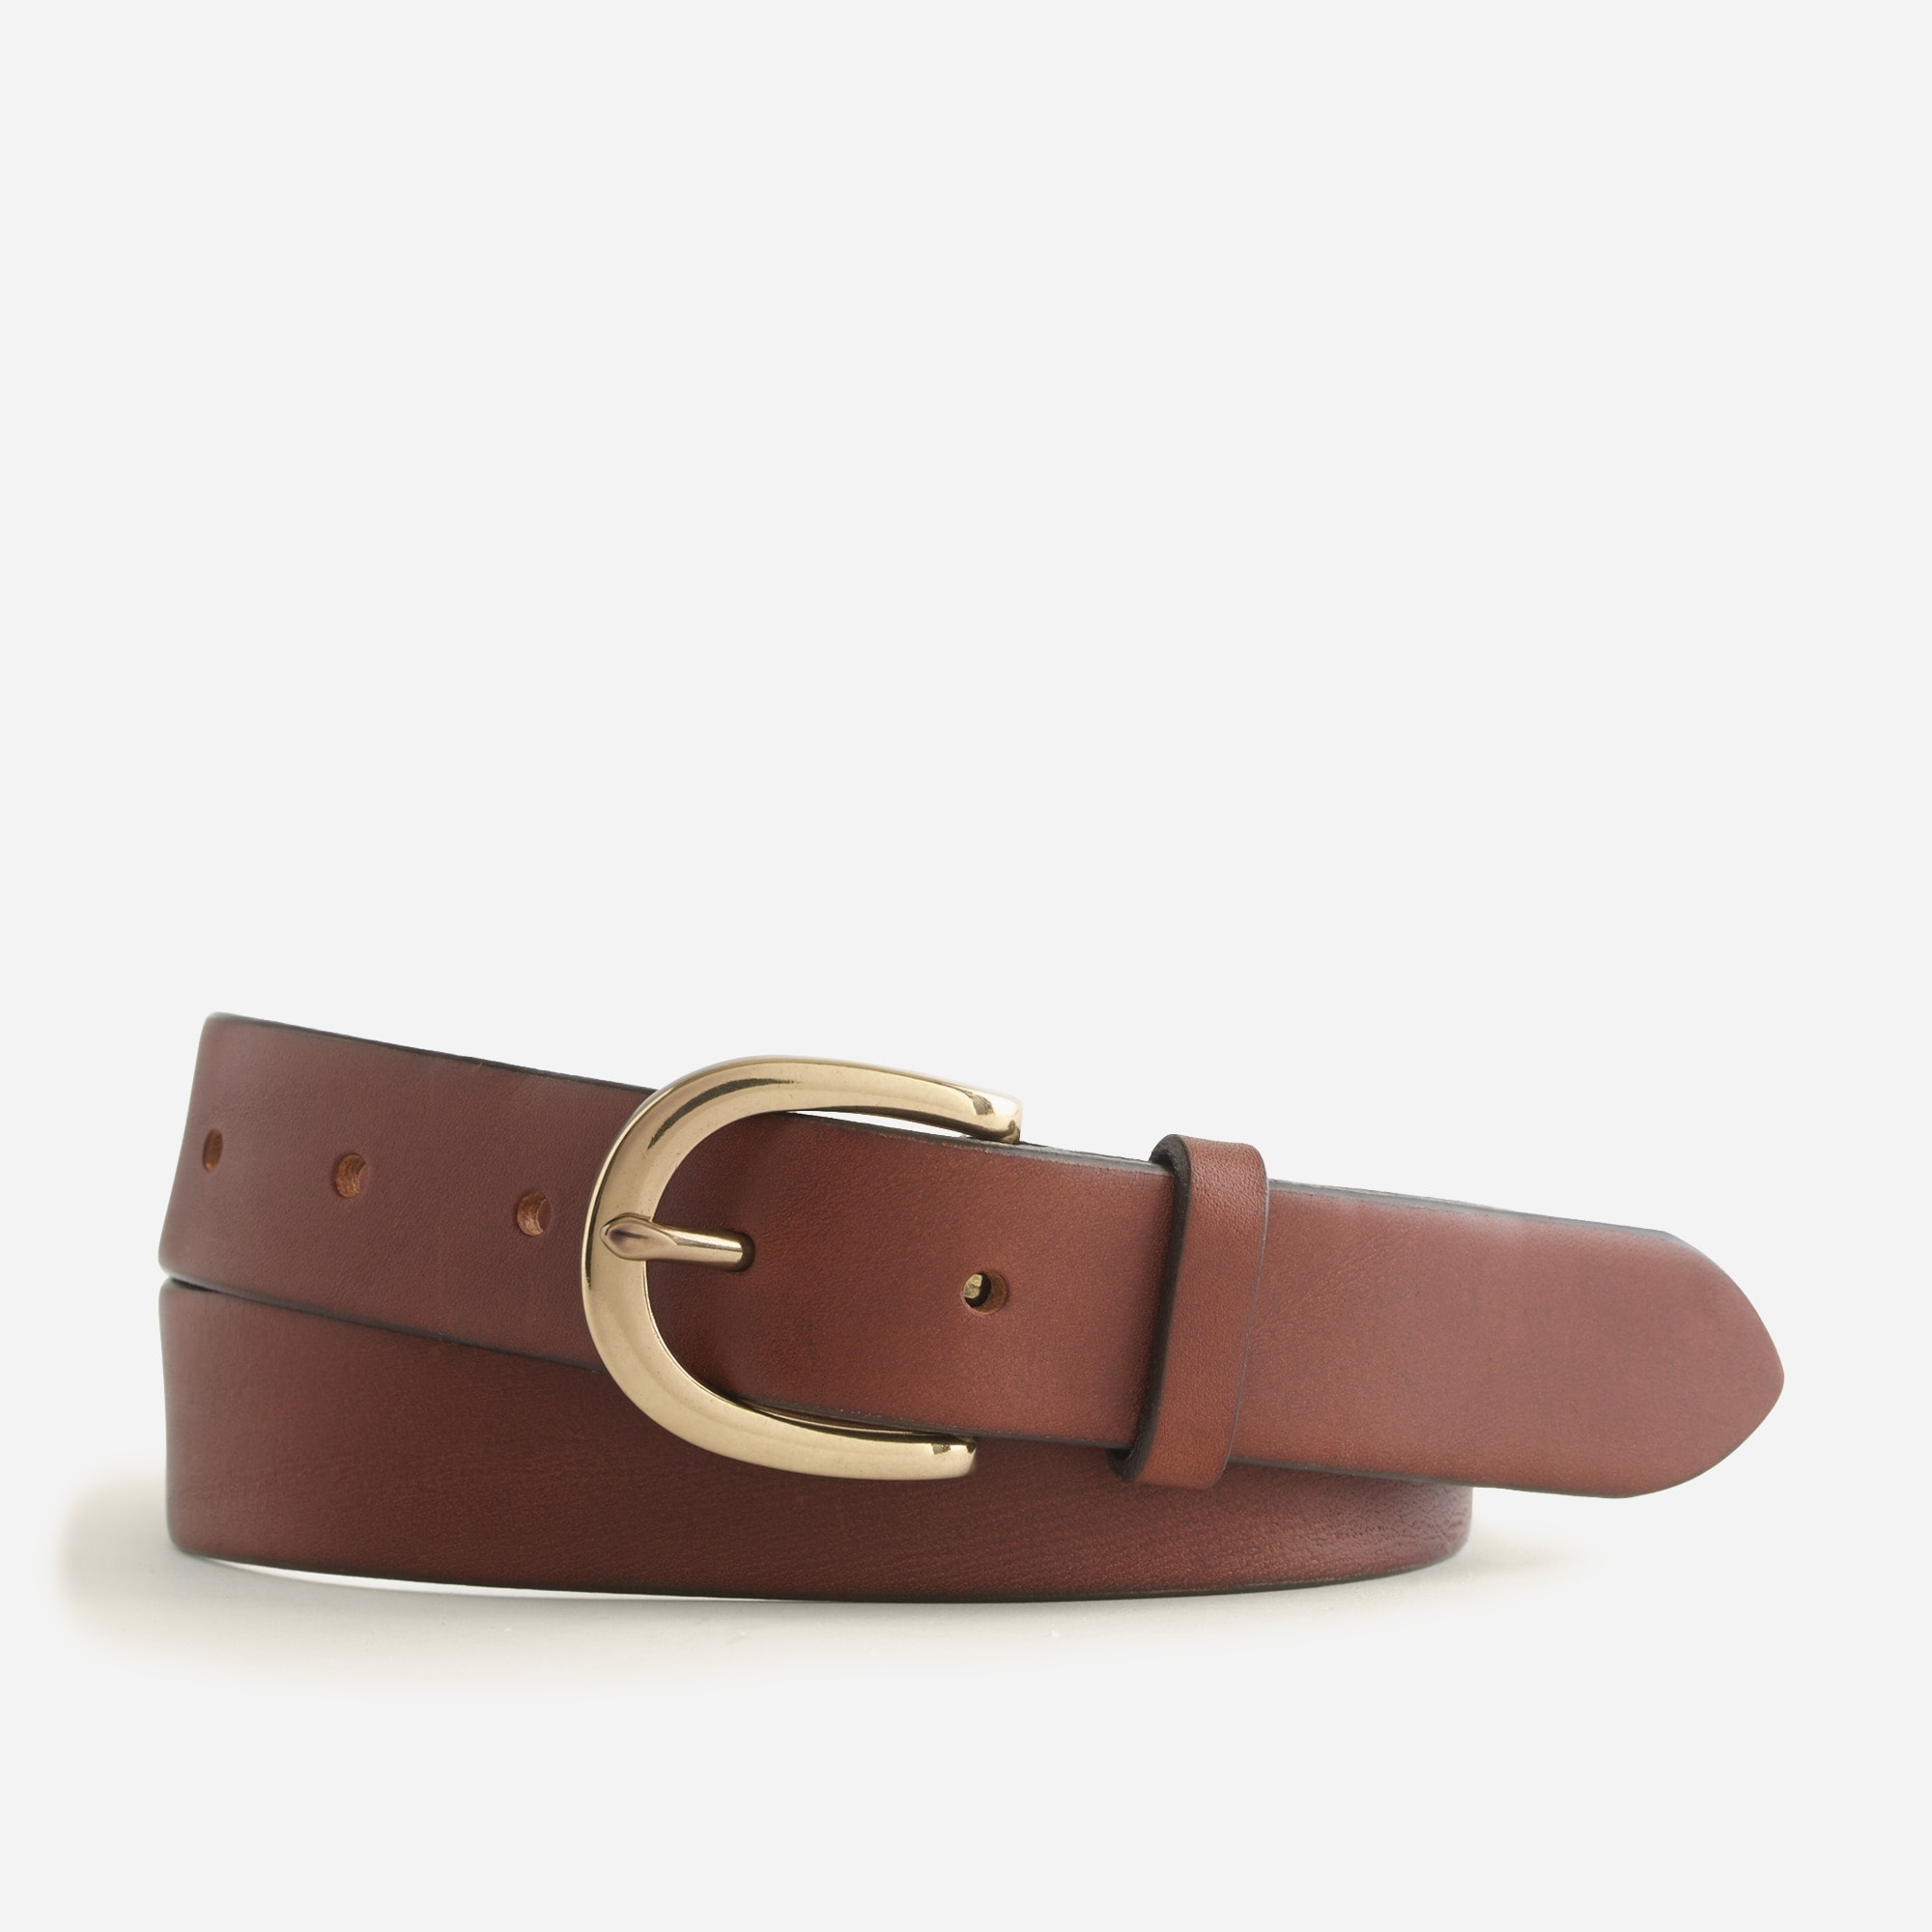 womens Classic leather belt